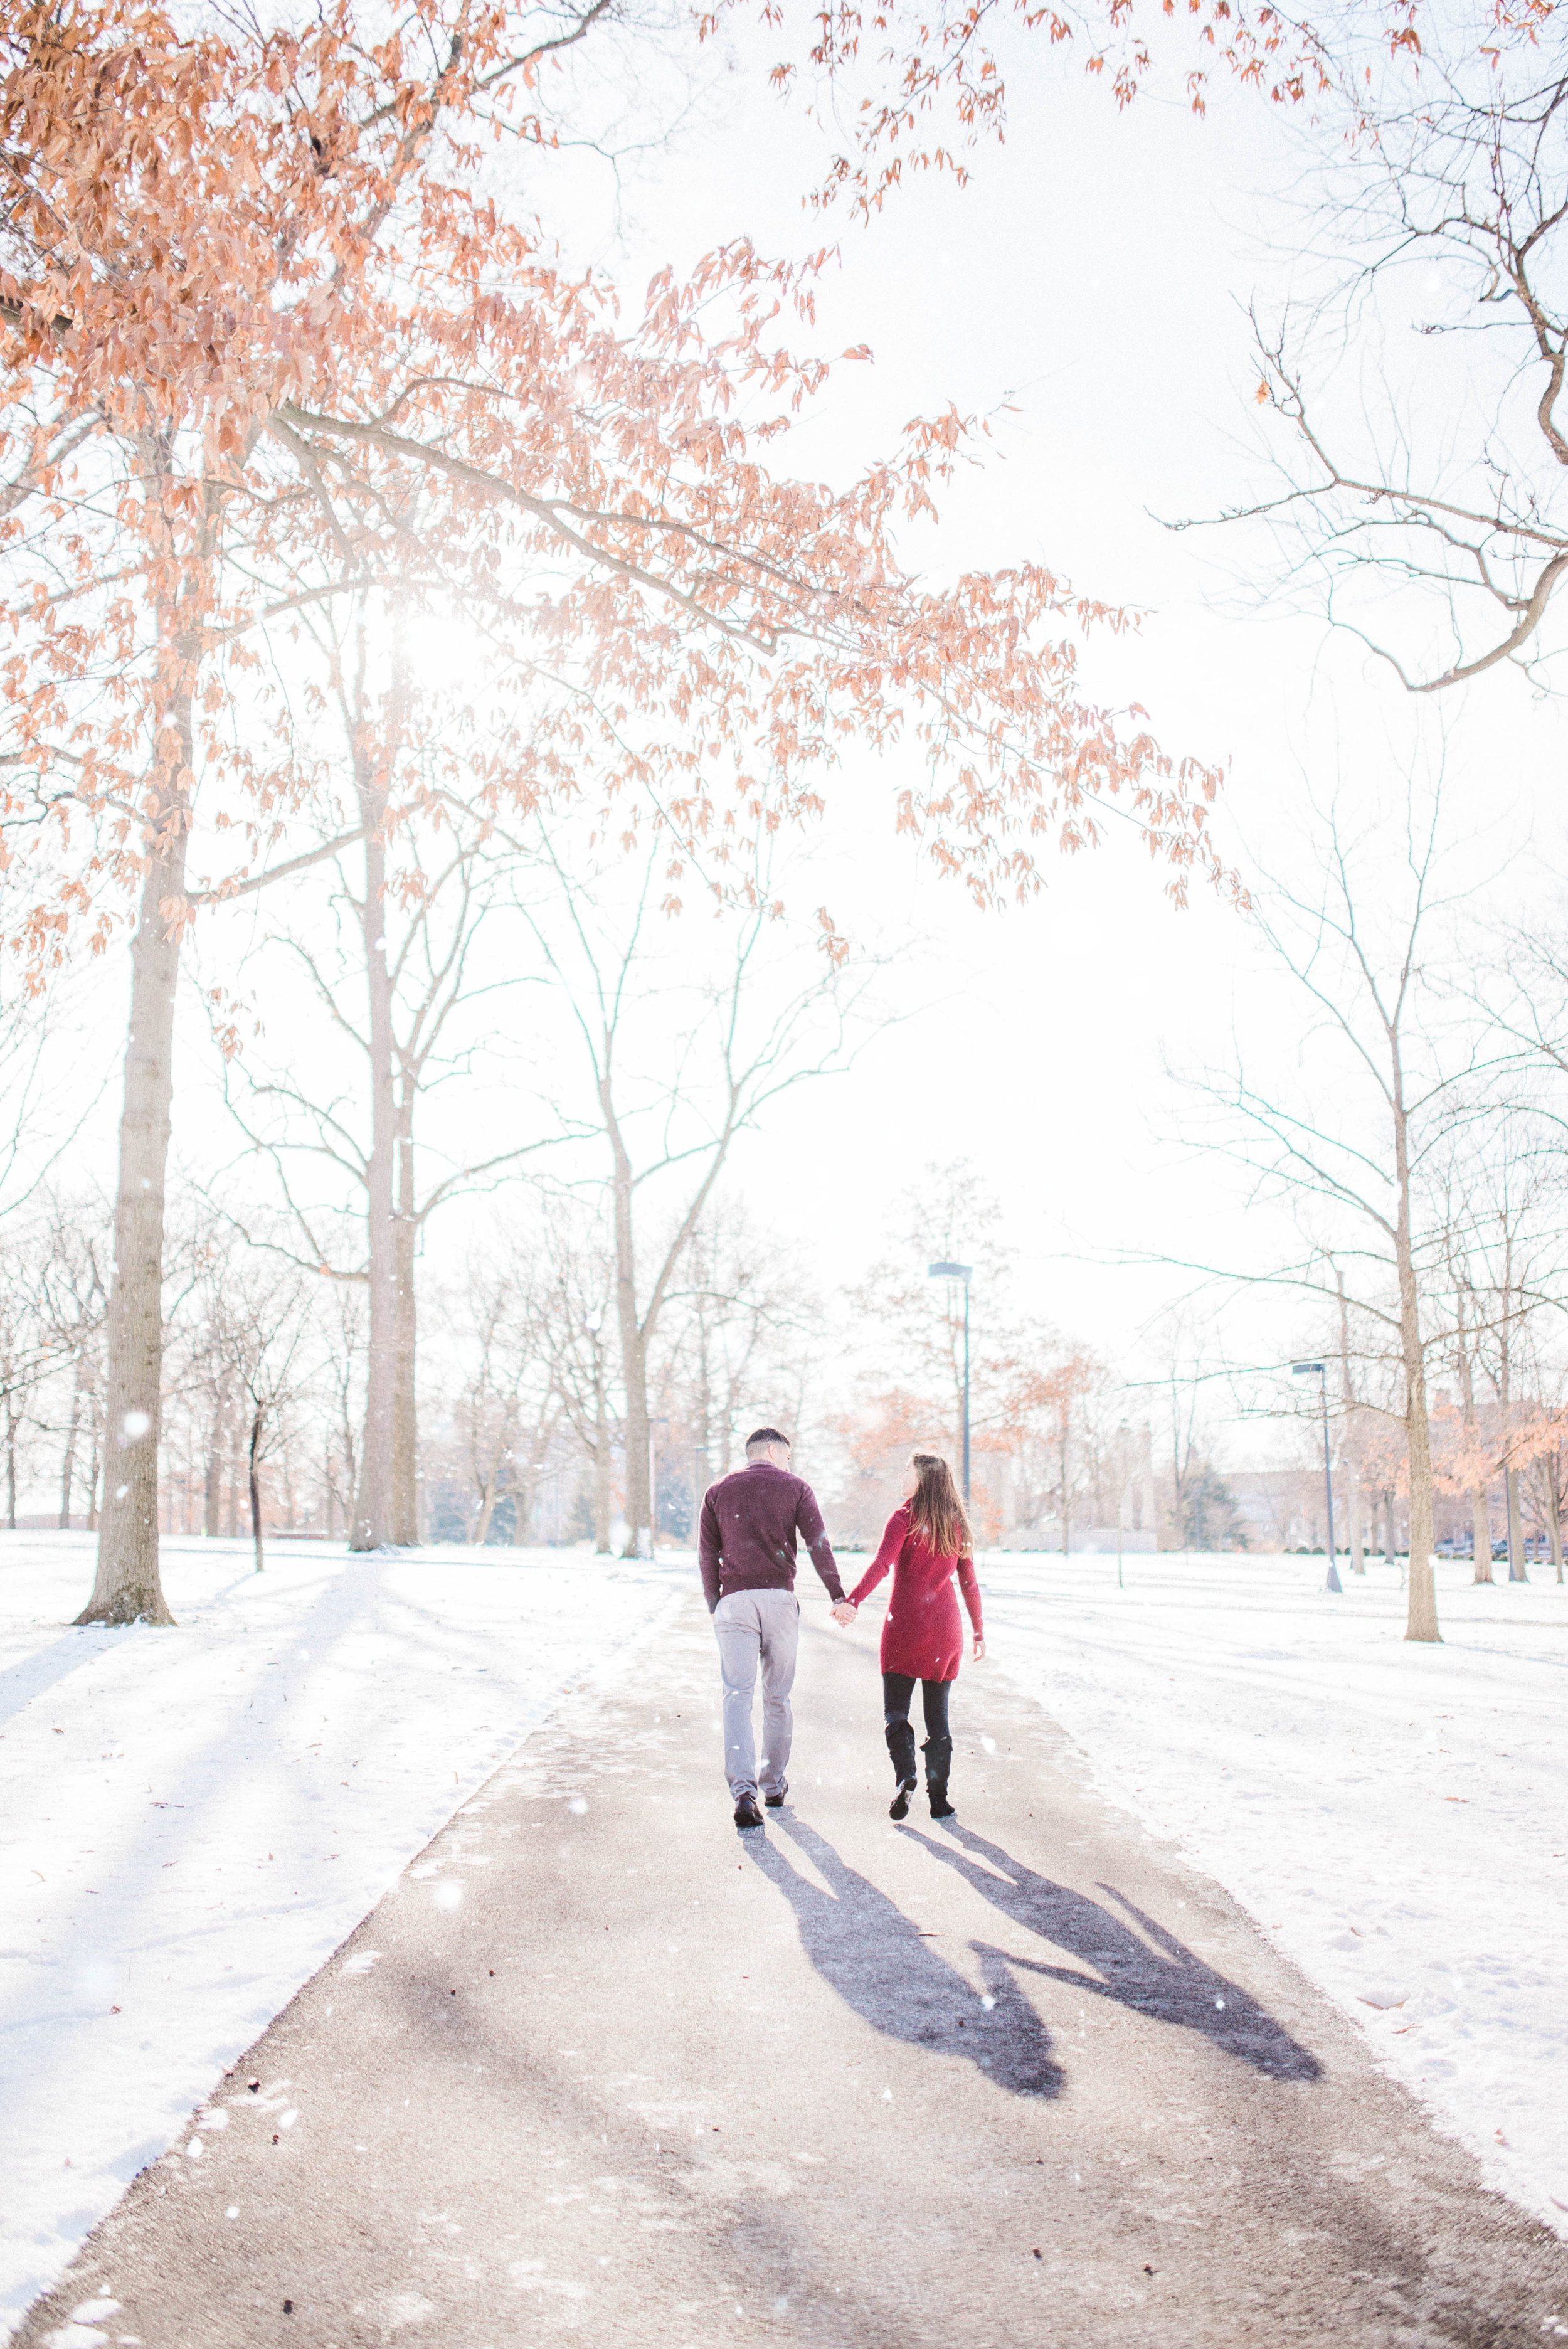 Fine Art Indianapolis Destination Wedding Photographer | Winter Engagement at Ball State University in Muncie, IN